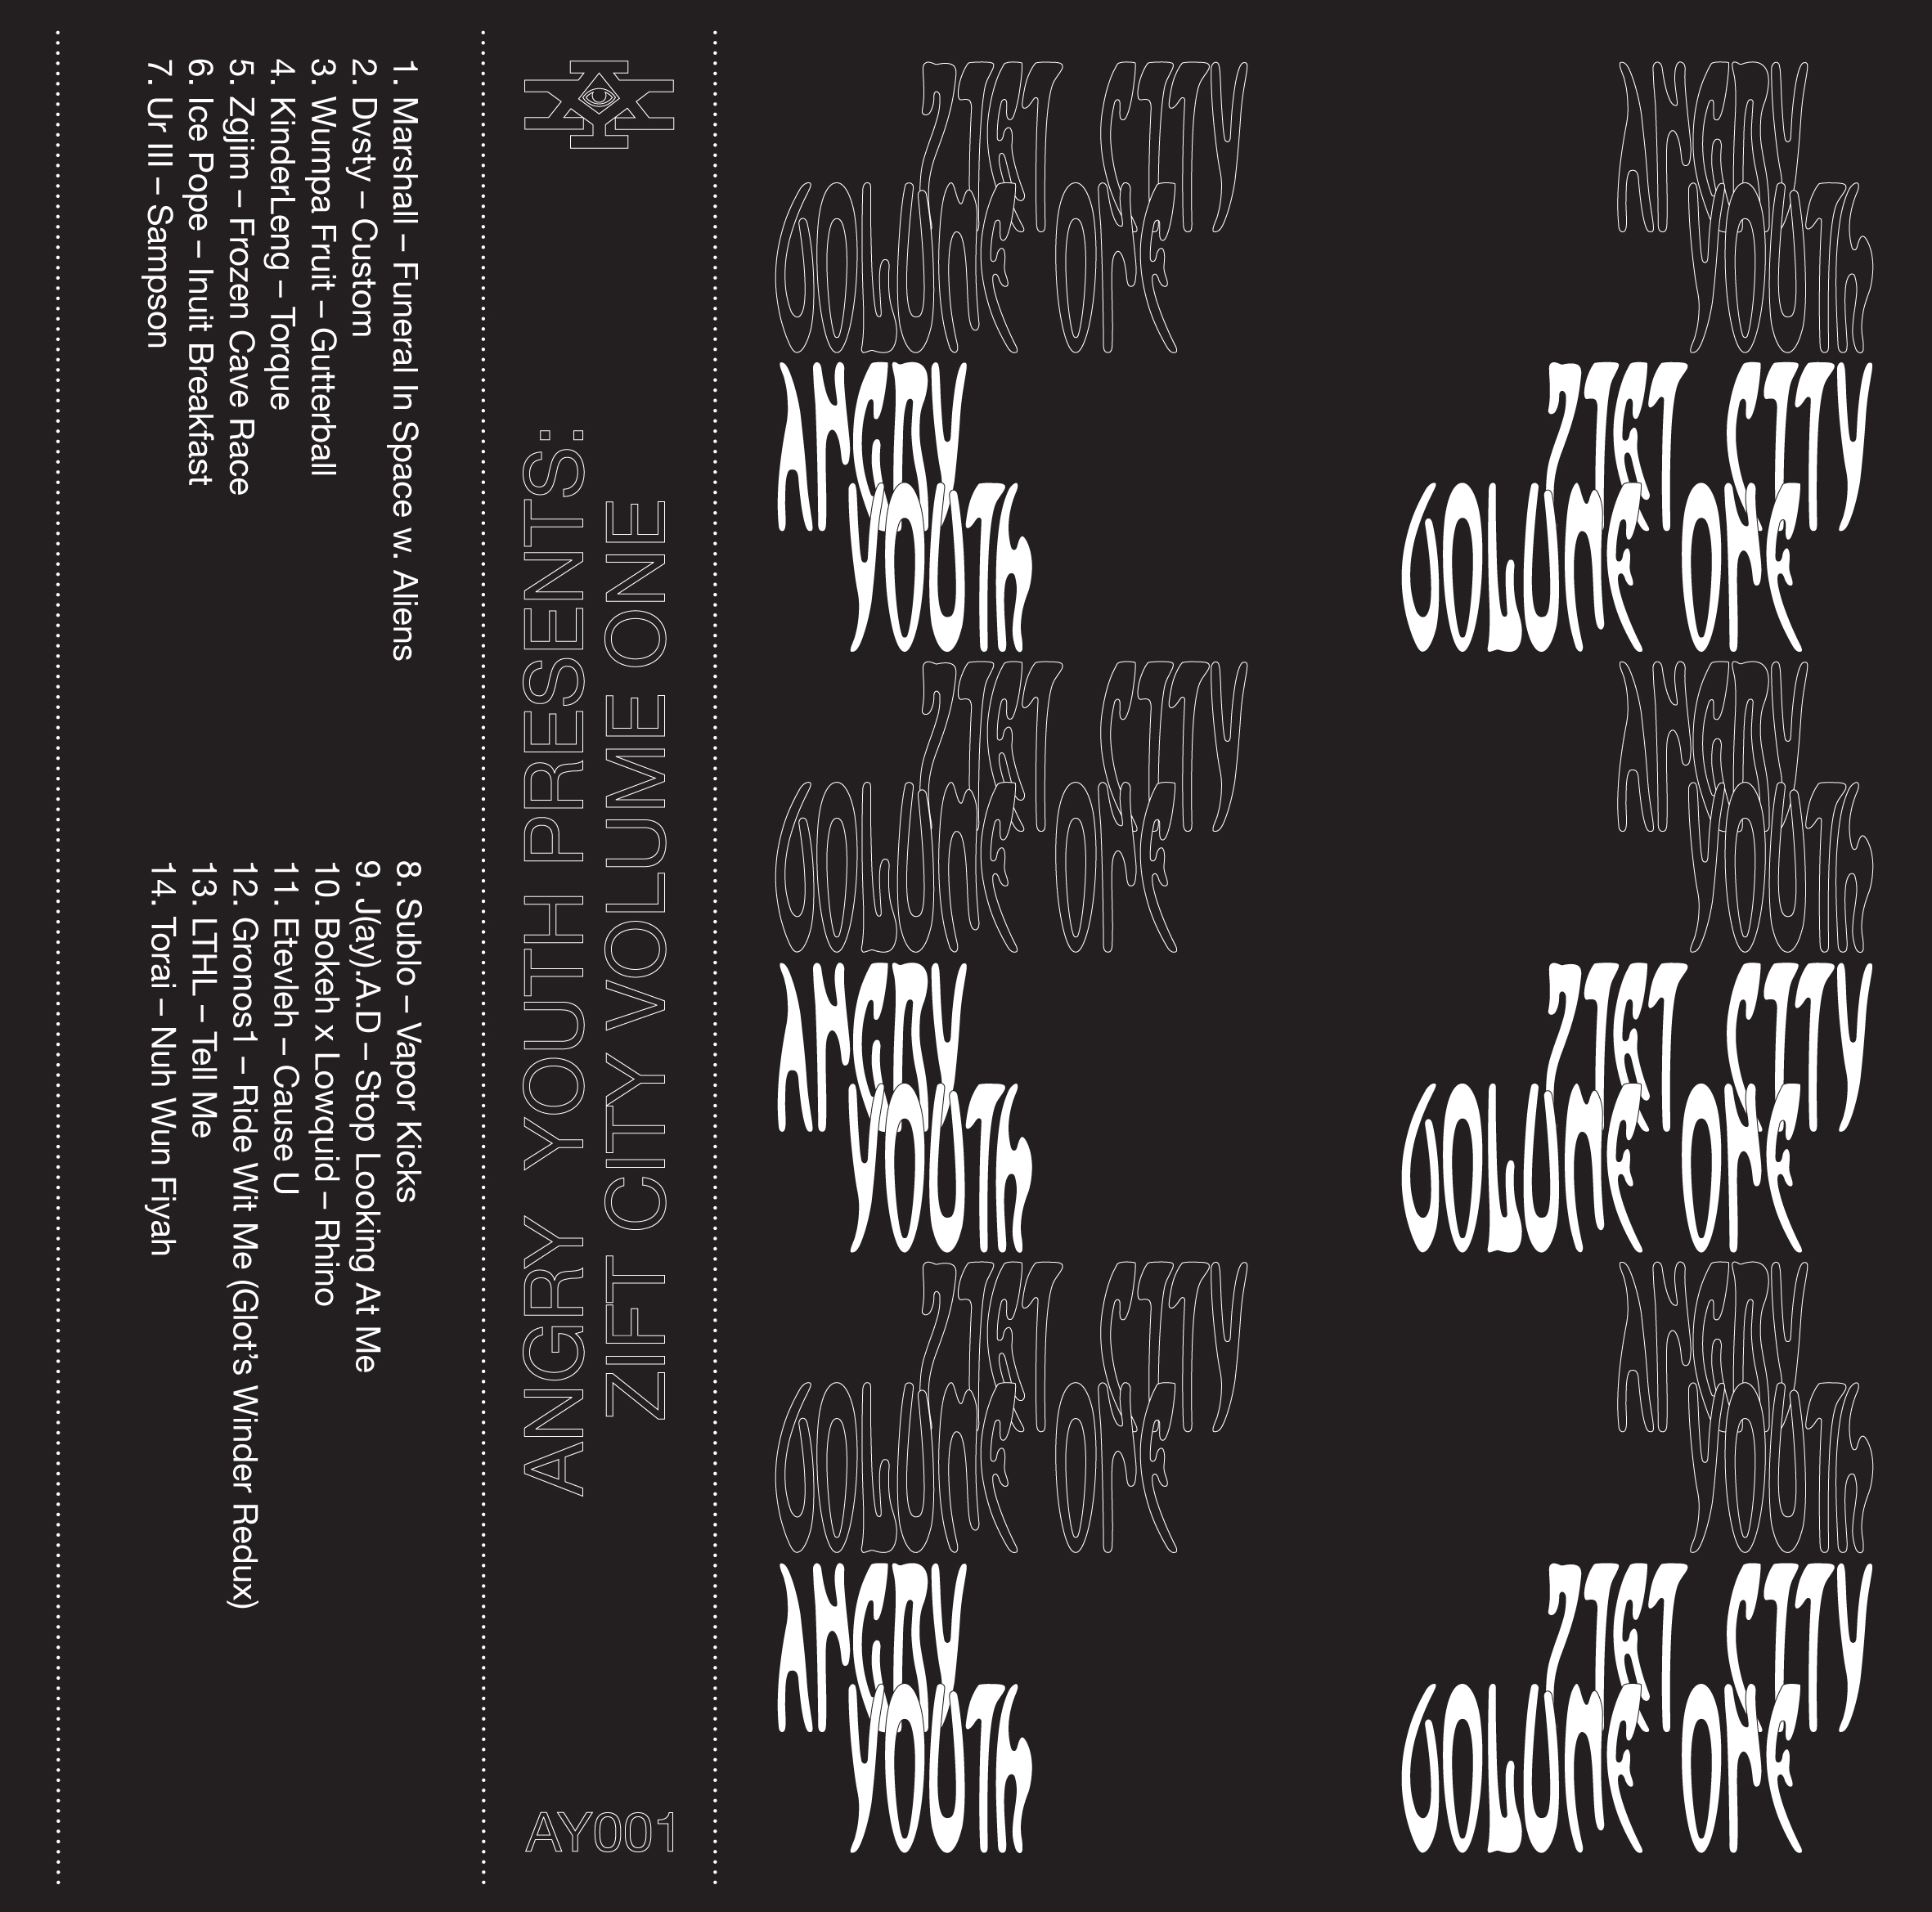 Review A Sift Through Angry Youths Zift City Volume 1